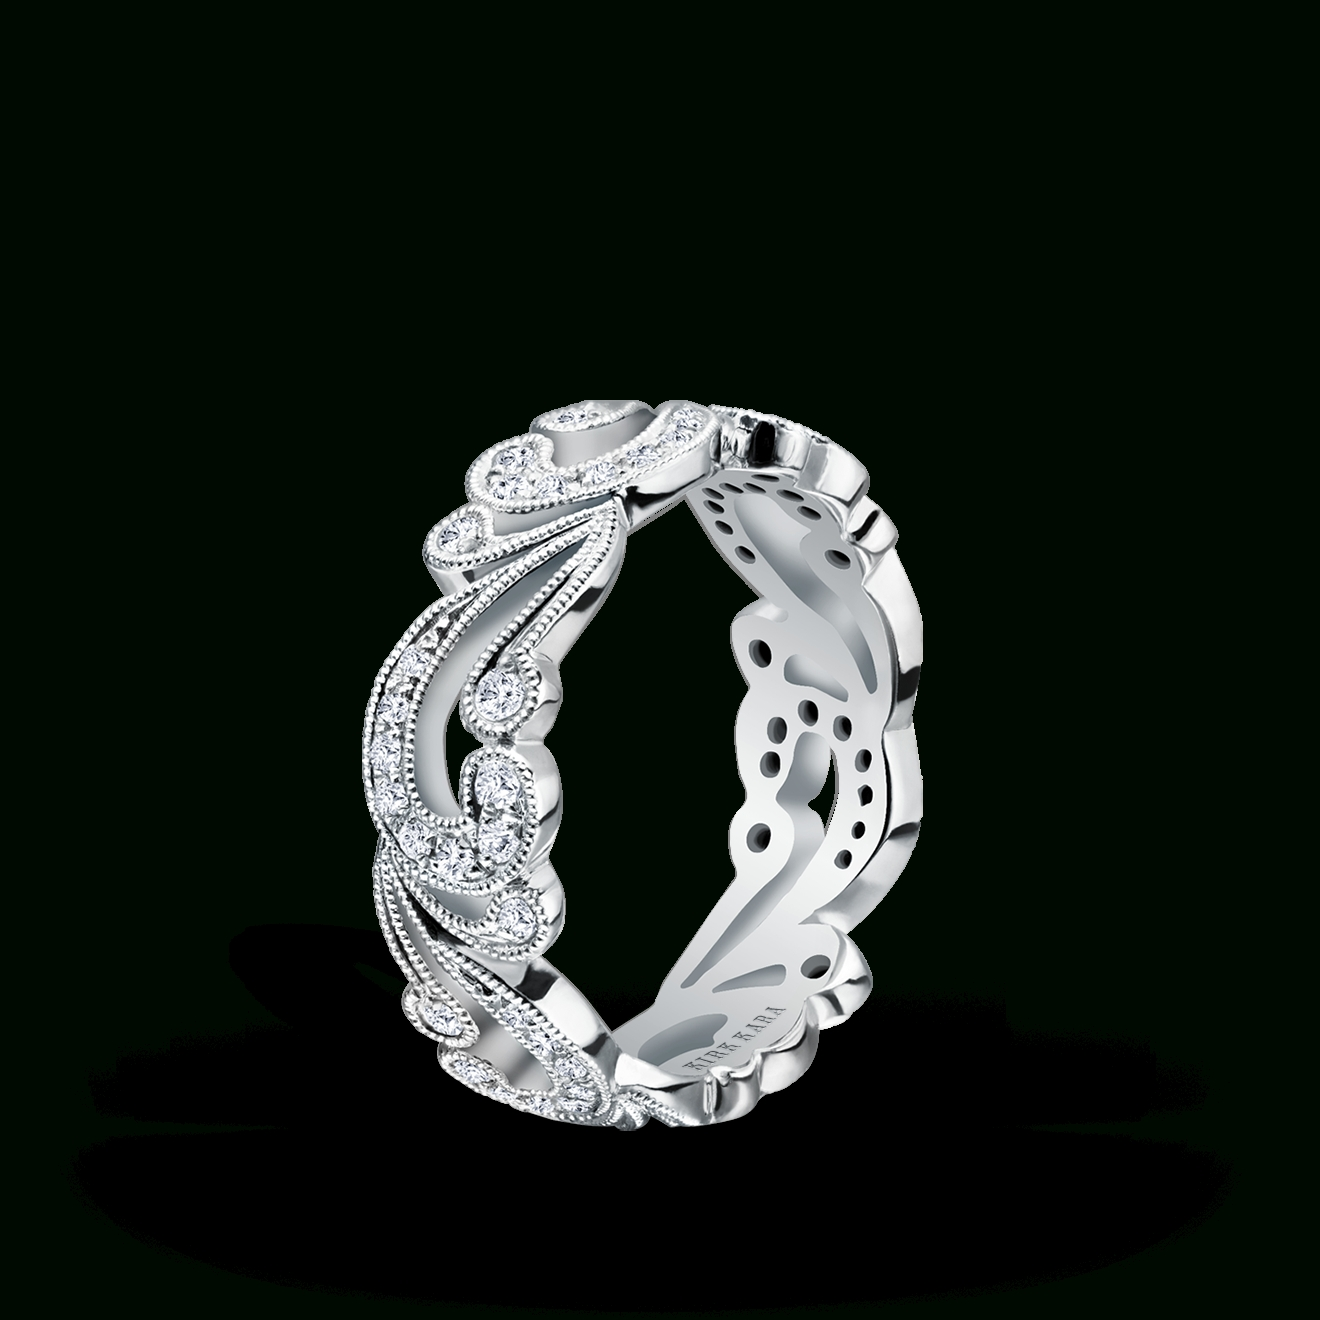 Designer Diamond Wedding & Anniversary Bands For Women | Kirk Kara With Regard To Women's Wide Wedding Bands (View 6 of 15)